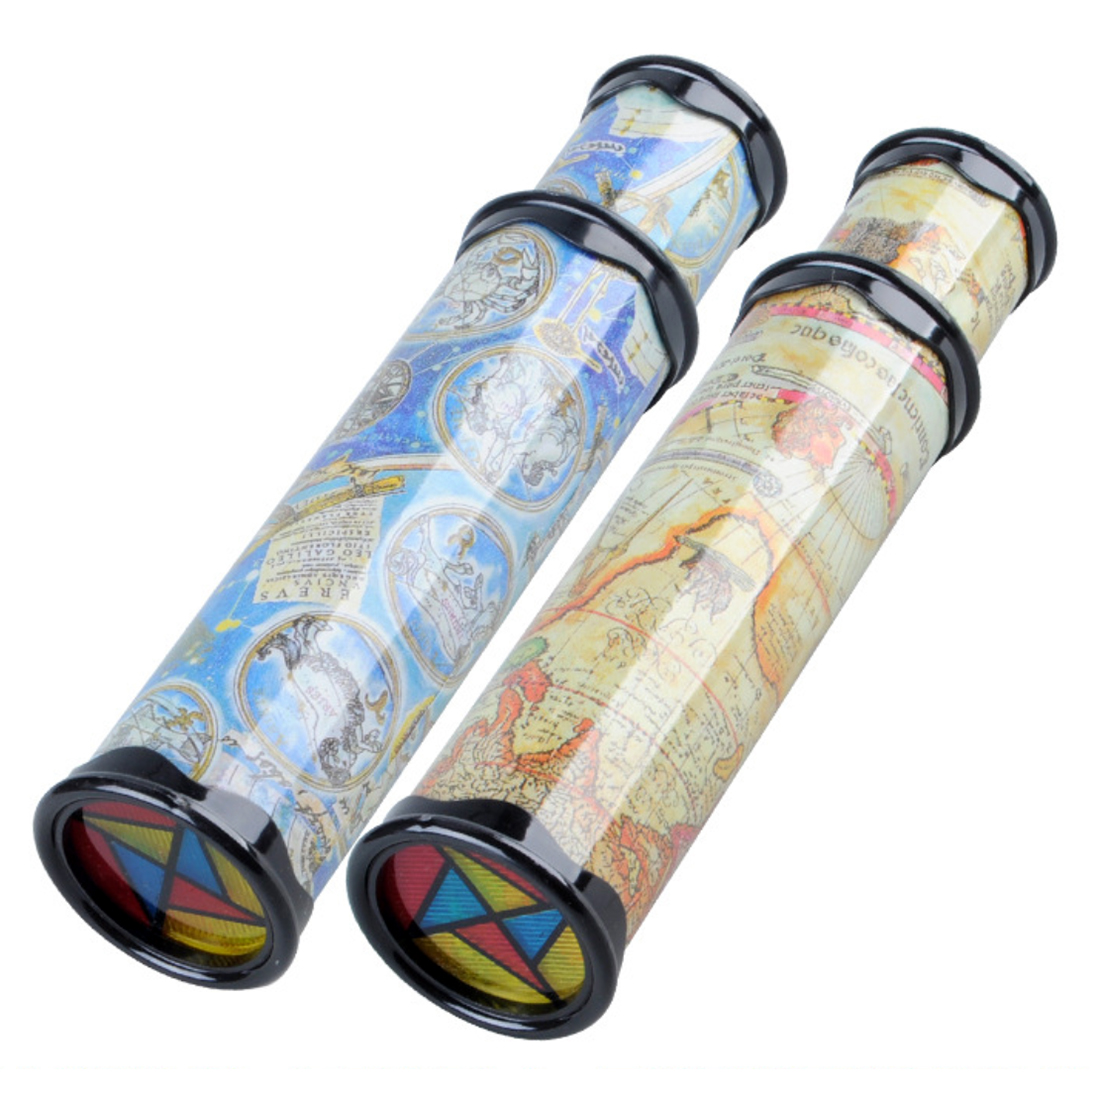 Big Size Plastic Stretchable Magic Kaleidoscope Kids Children Educational Toy - Random Delivery